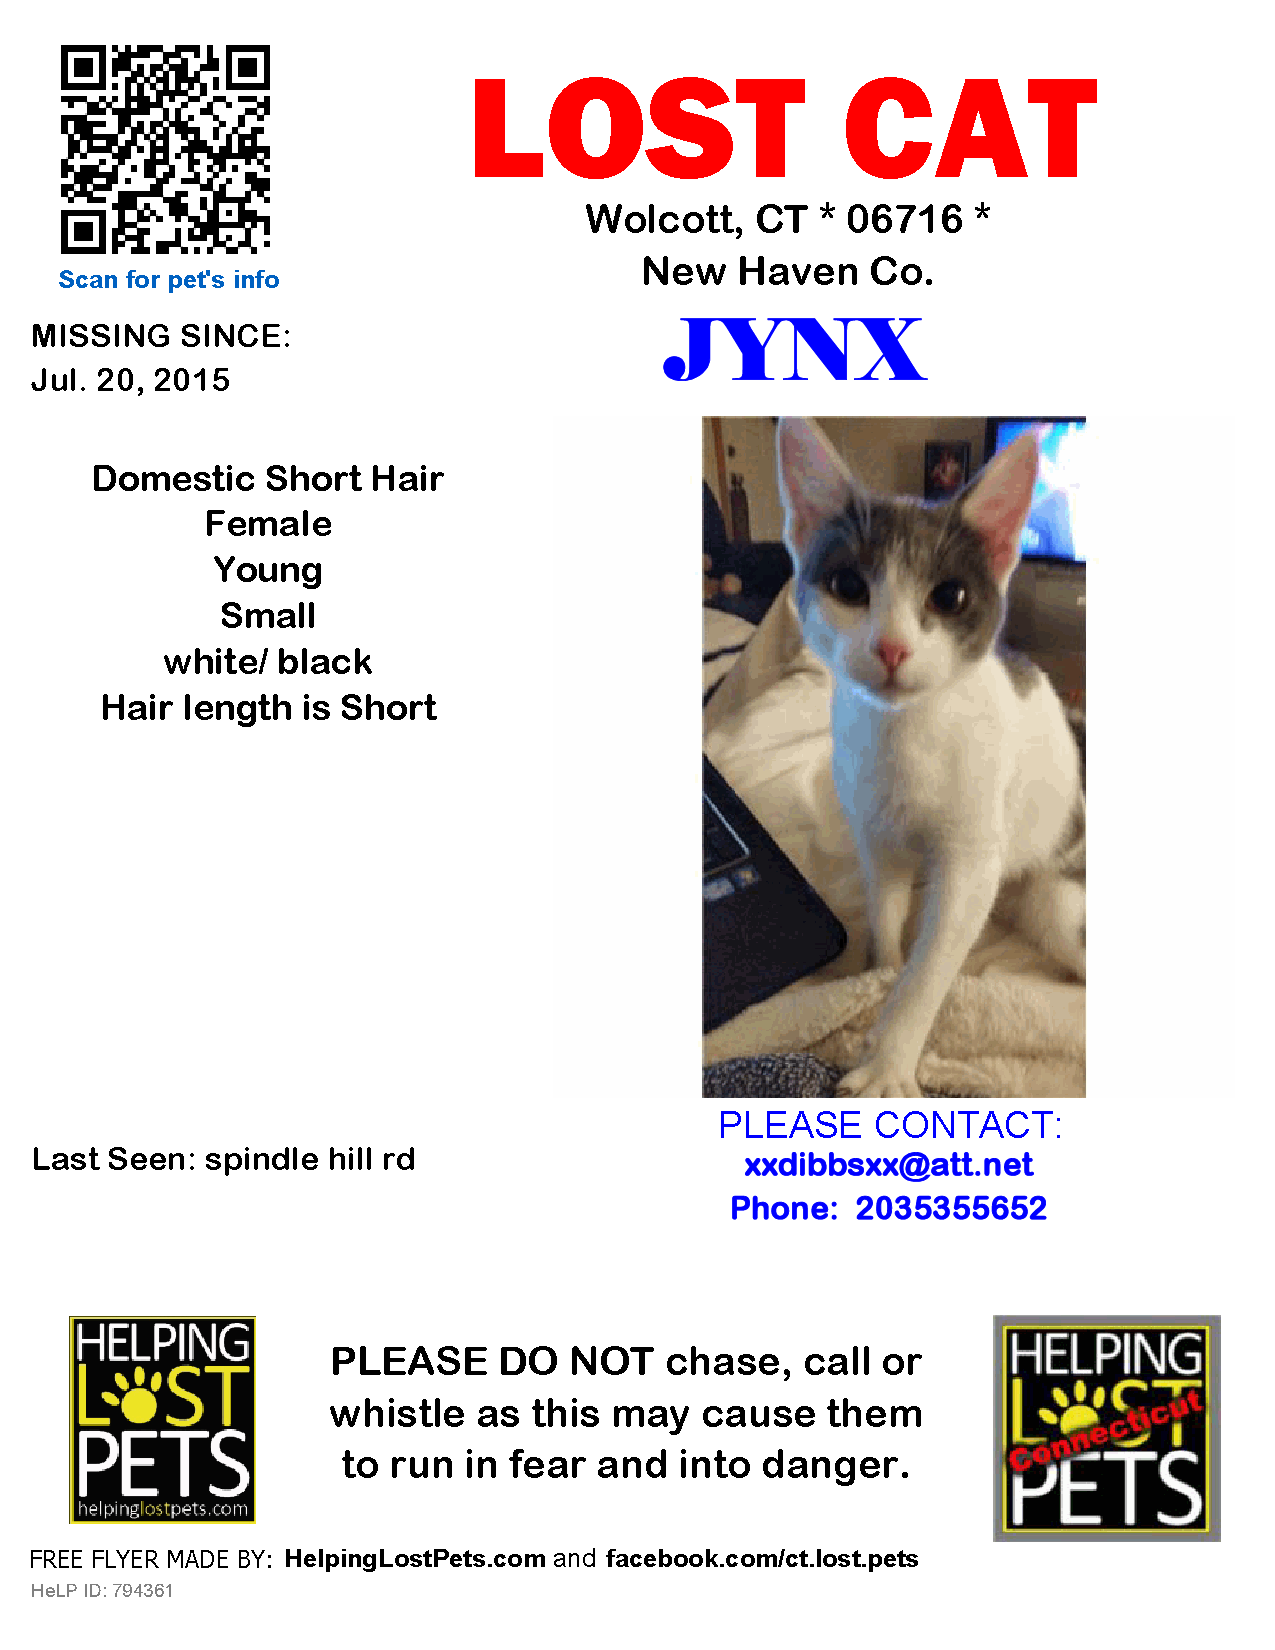 Lost Cat Female Wolcott Ct Usa 06716 Lost Cat Domestic Short Hair Cats